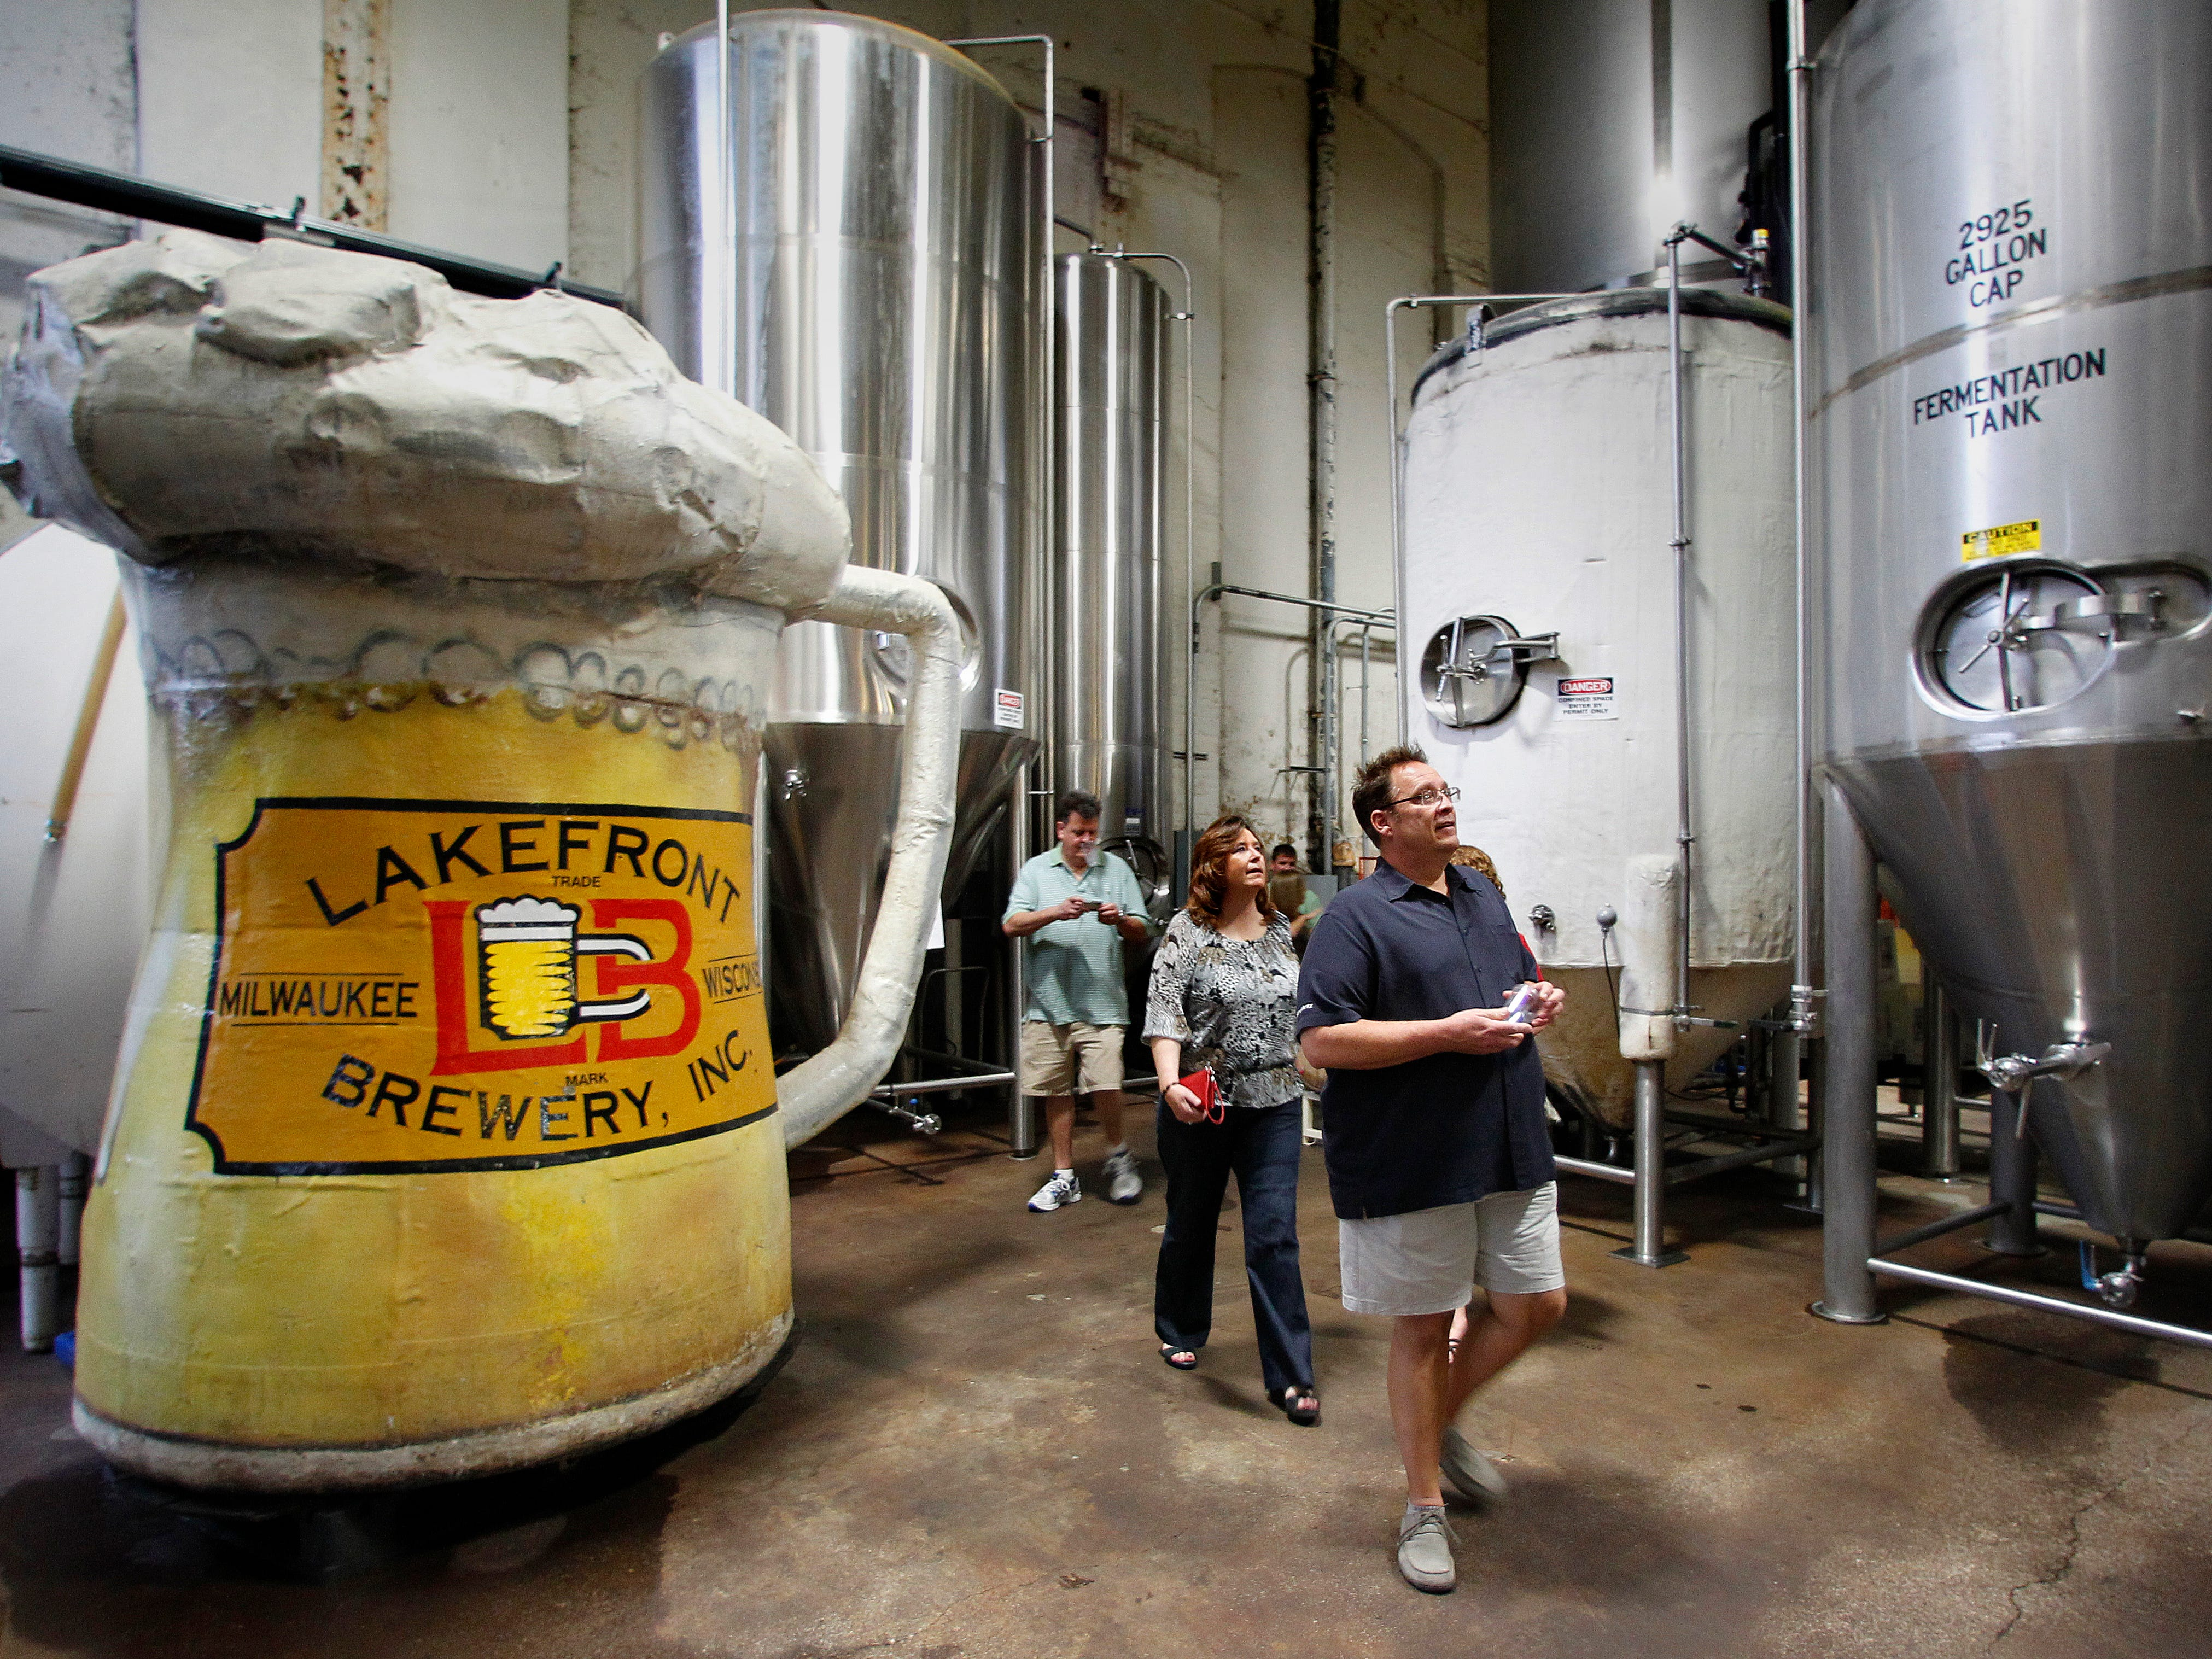 People taking the tour at Milwaukee's Lakefront Brewery walk past the old beer mug from Bernie Brewer's chalet at County stadium on Sept. 7, 2012. The beer mug and Bernie's chalet are part of the Lakefront tour, which is one of the country's most popular brewery tours.